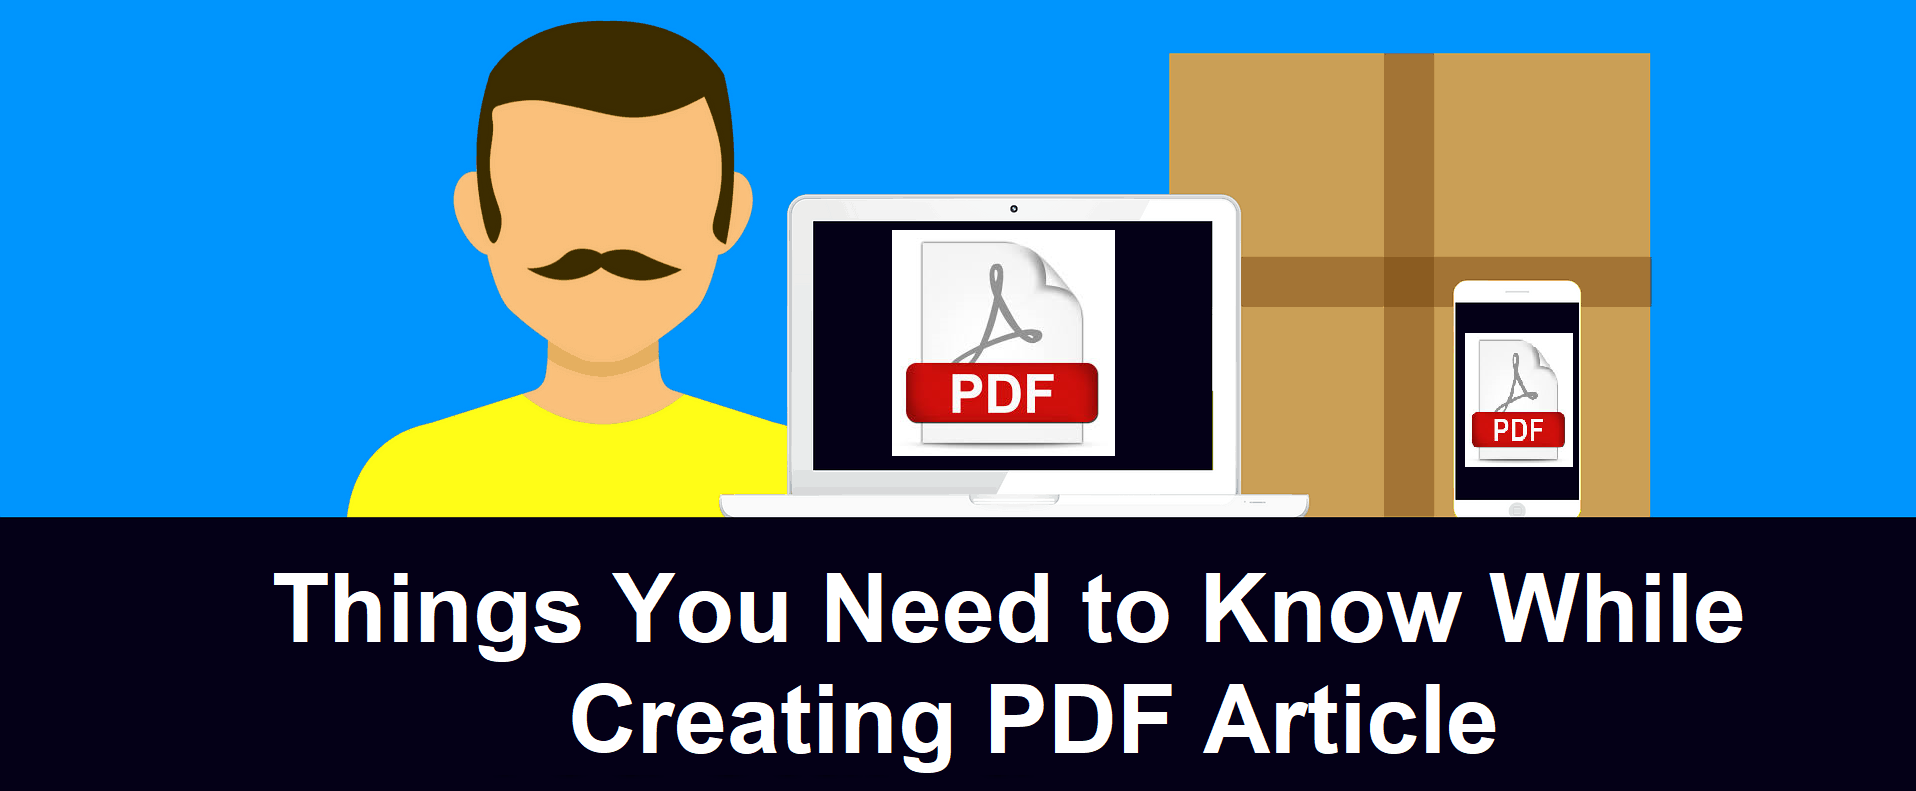 Things You Need to Know While Creating PDF Article